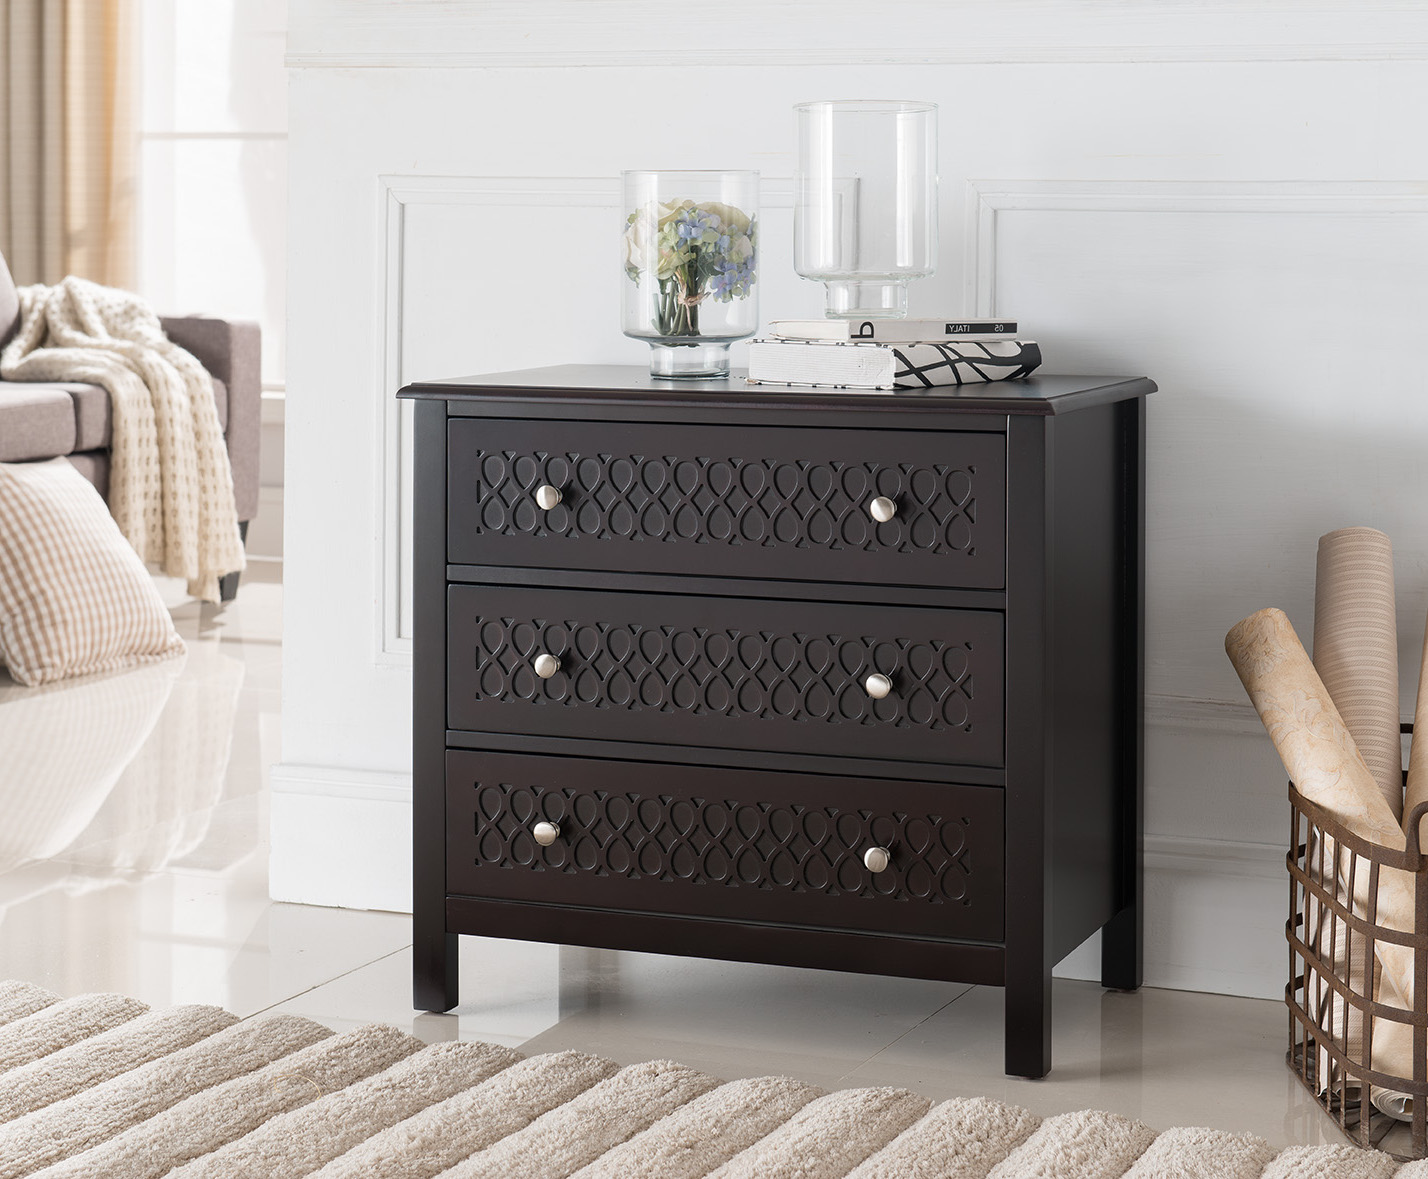 Image Is Loading Espresso Wood Accent Entryway Display Console Table With